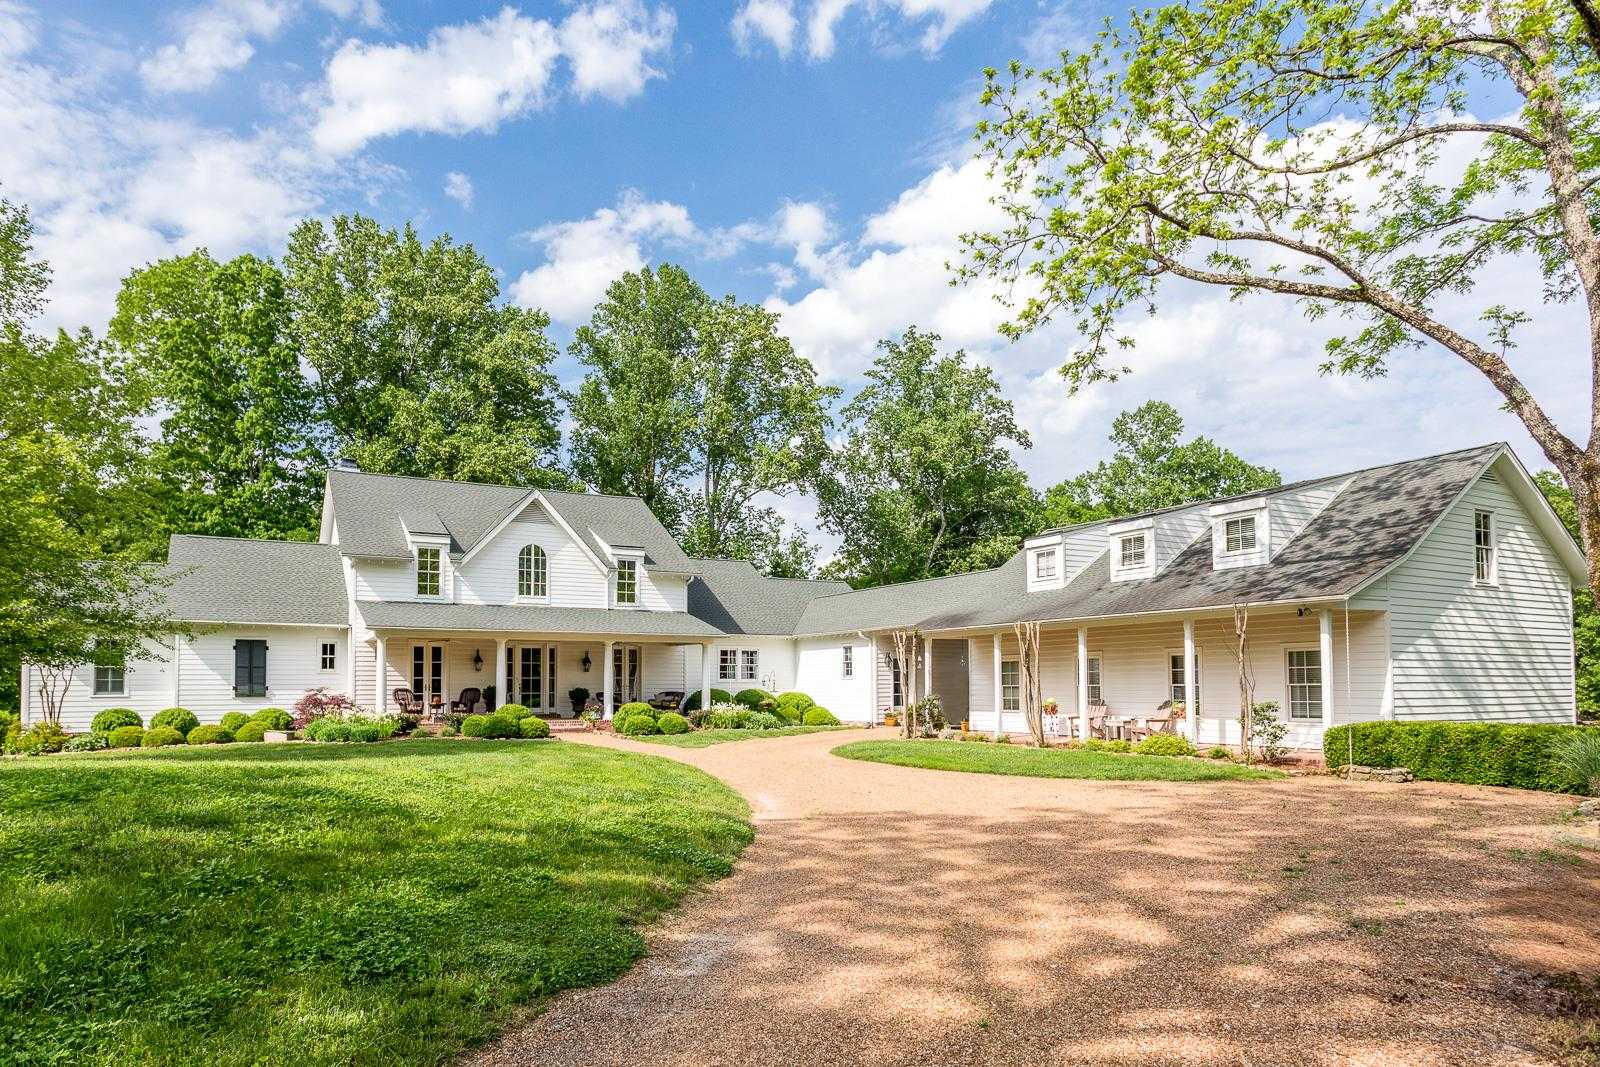 $3,950,000 - 4Br/6Ba -  for Sale in 17 Acres, Franklin